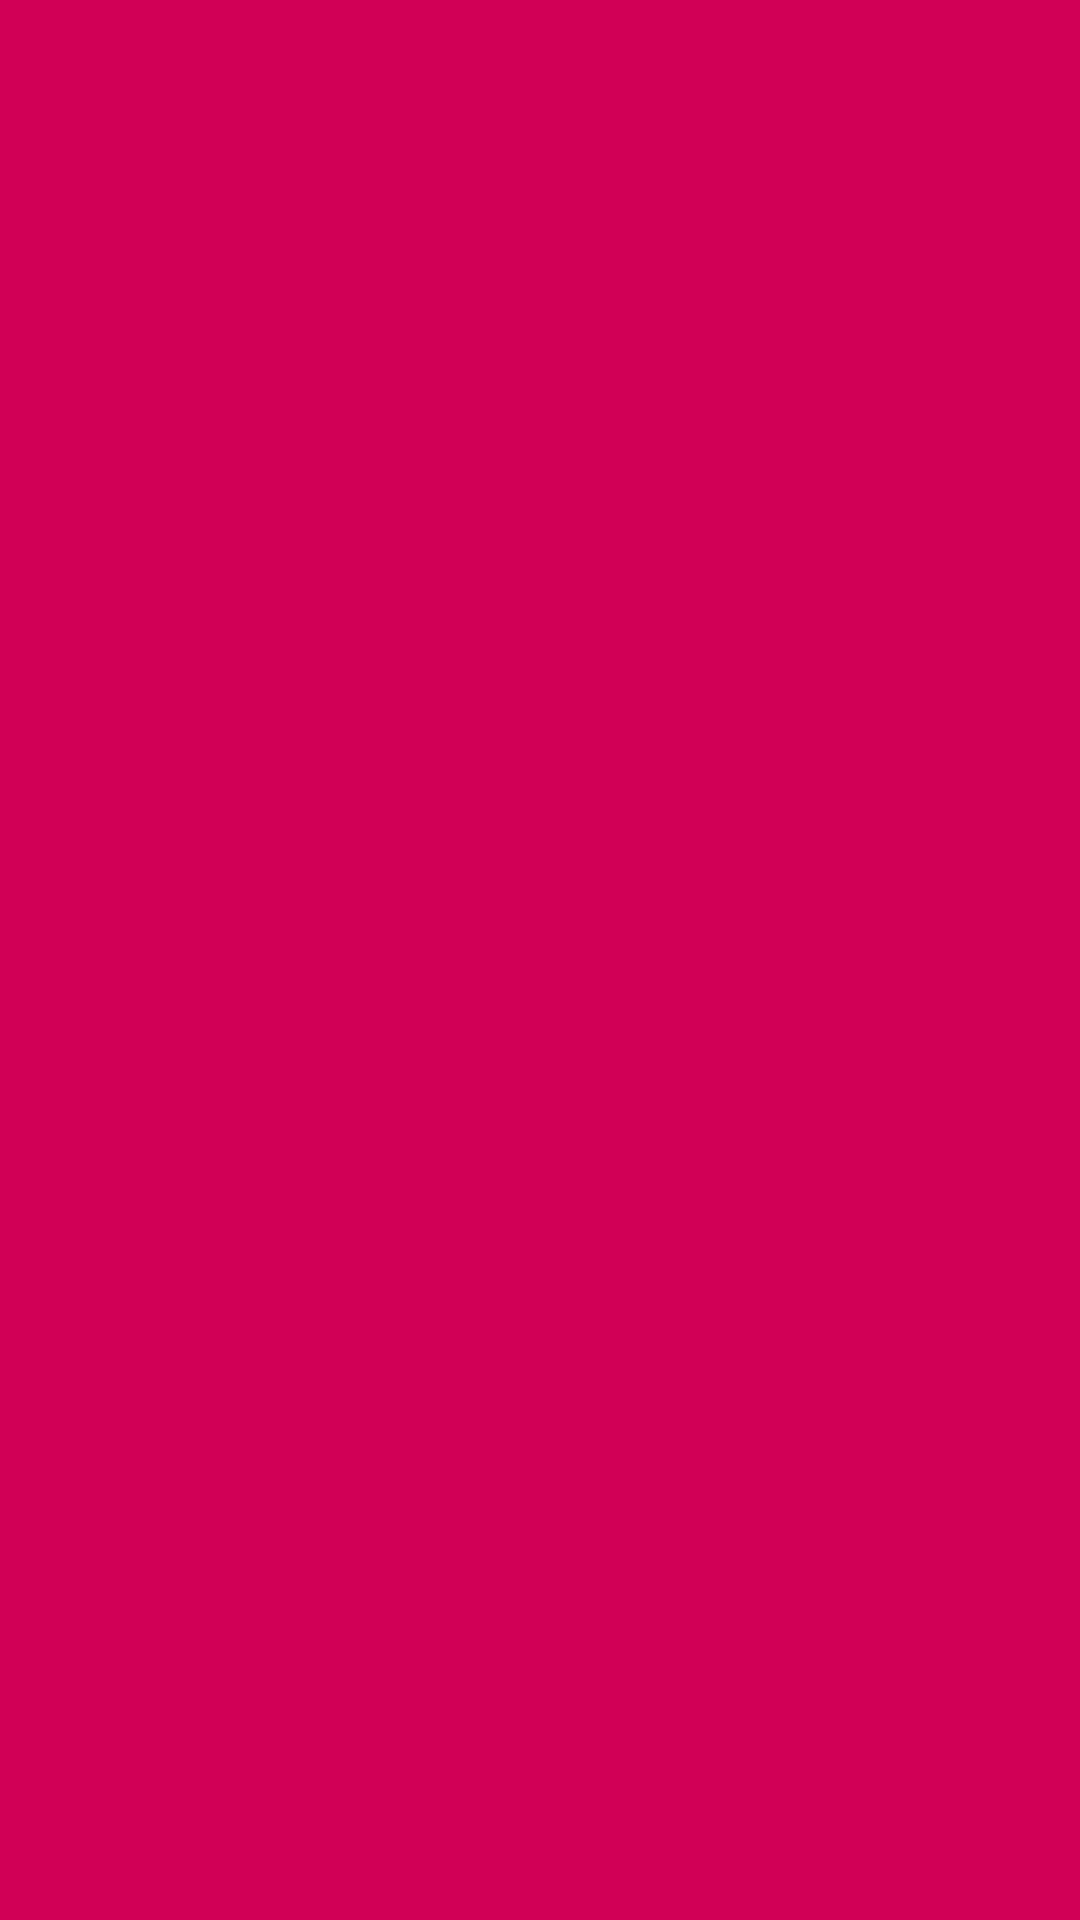 1080x1920 Rubine Red Solid Color Background